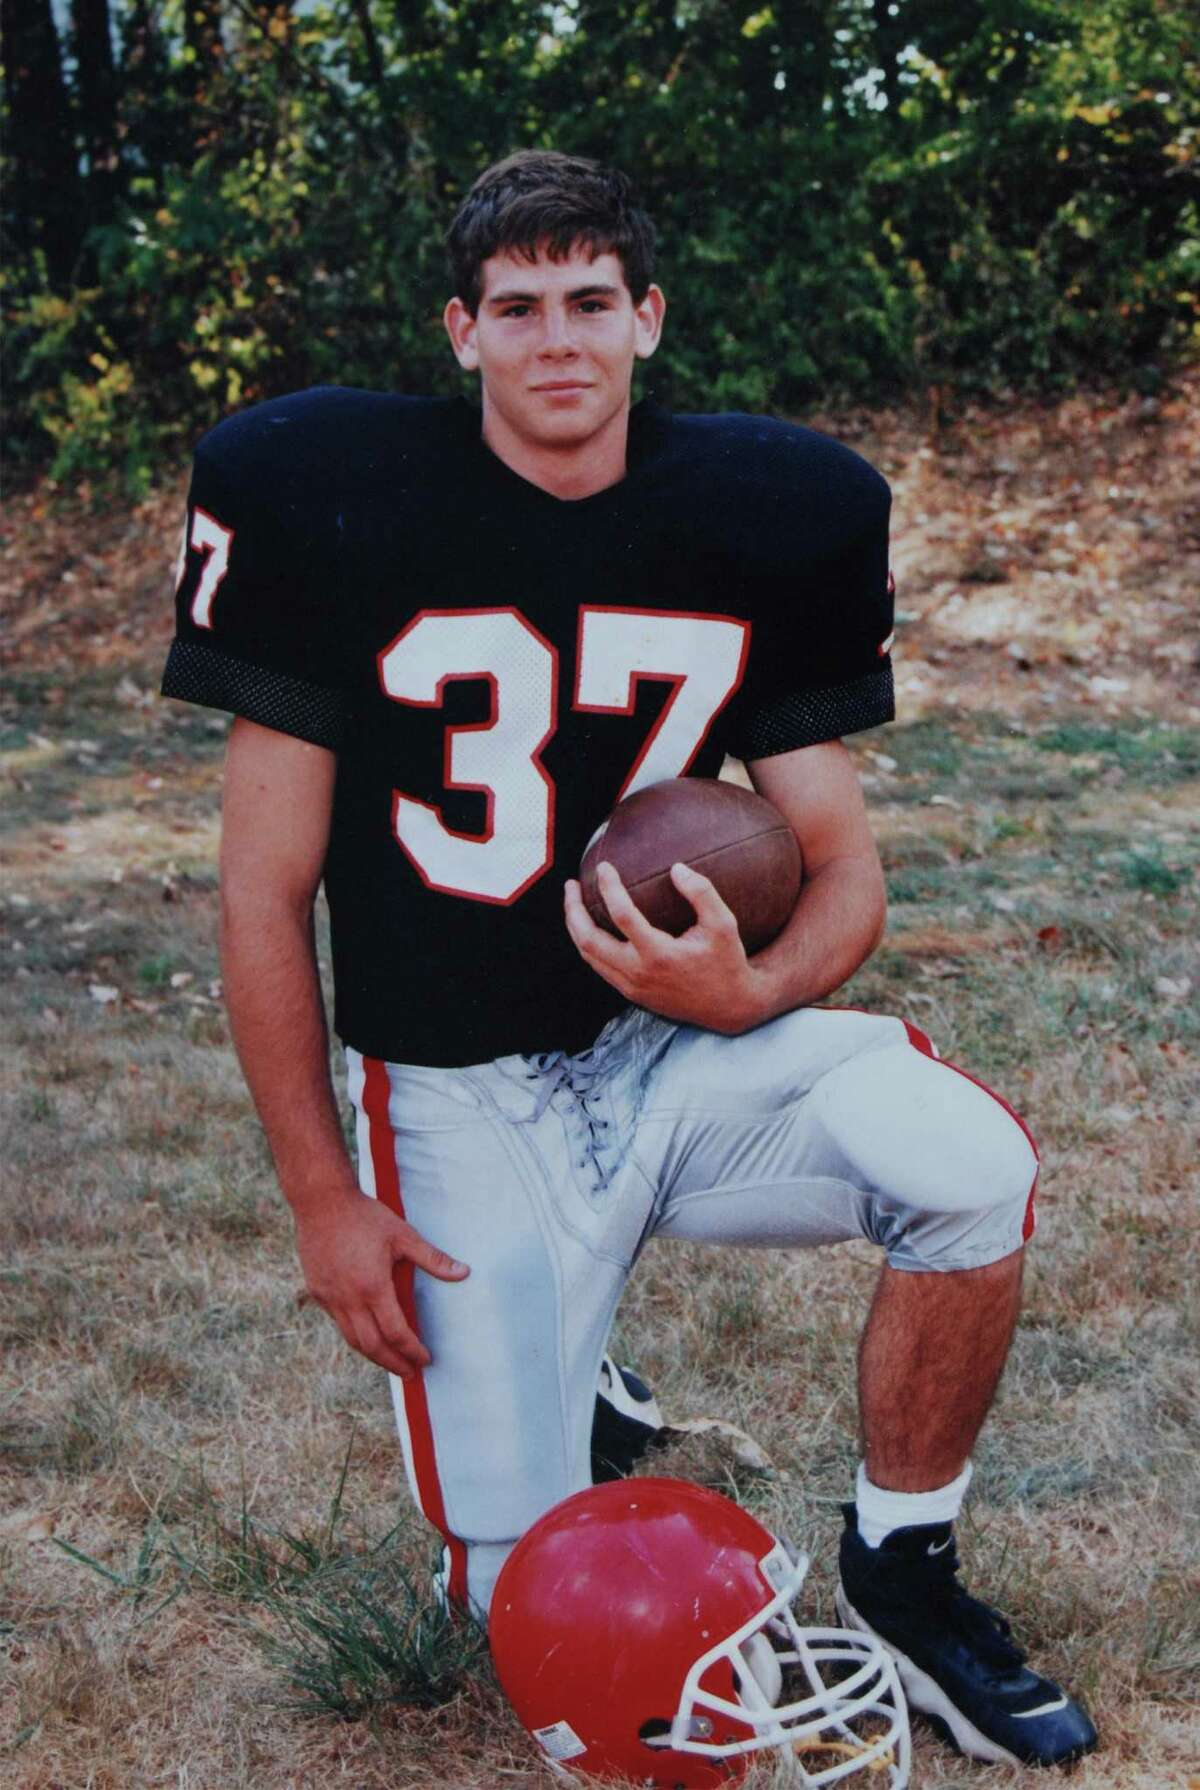 Brian Wilderman in his New Canaan High School football uniform. Wilderman, a captain of the Rams' 1997 team, died in 2000. New Canaan has renamed its first home game of the year the Brian Wilderman Game in his honor.